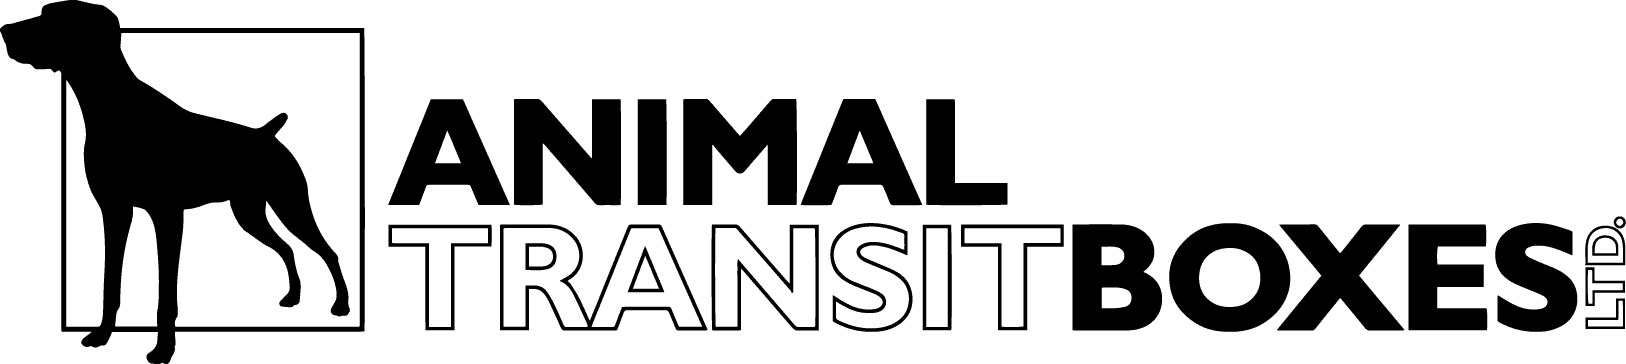 ANIMAL TRANSITBOXES LTD logo